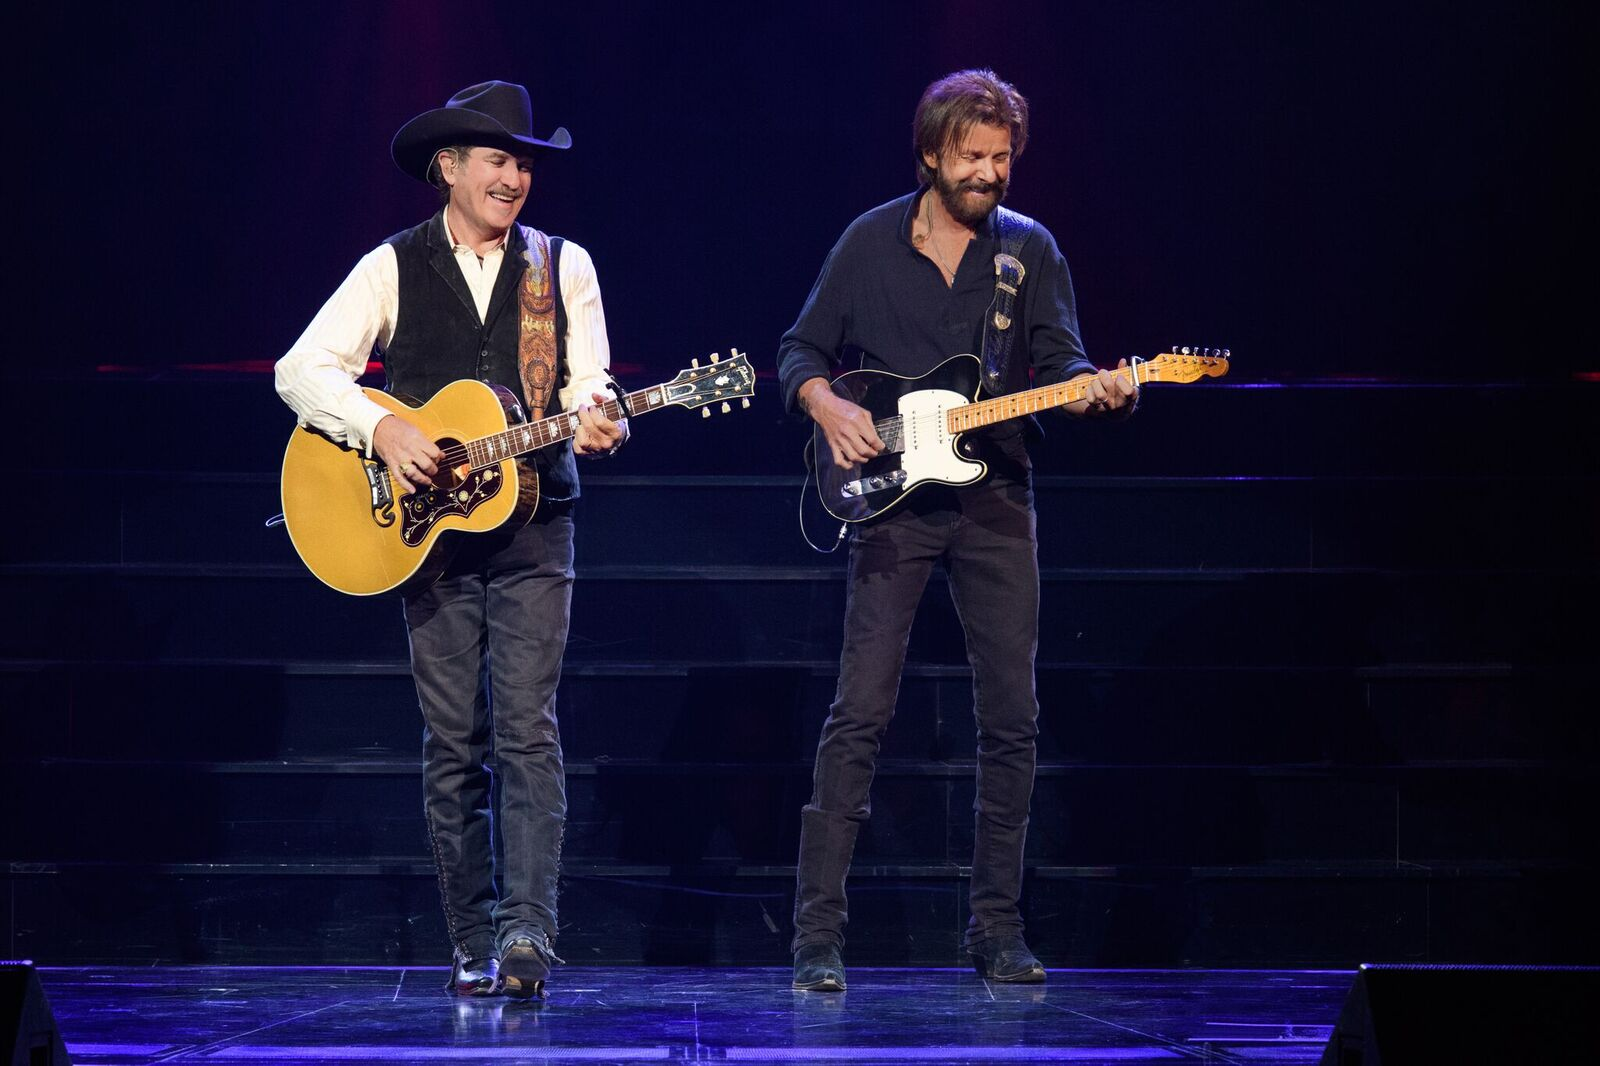 OCT 7 – Brooks and Dunn